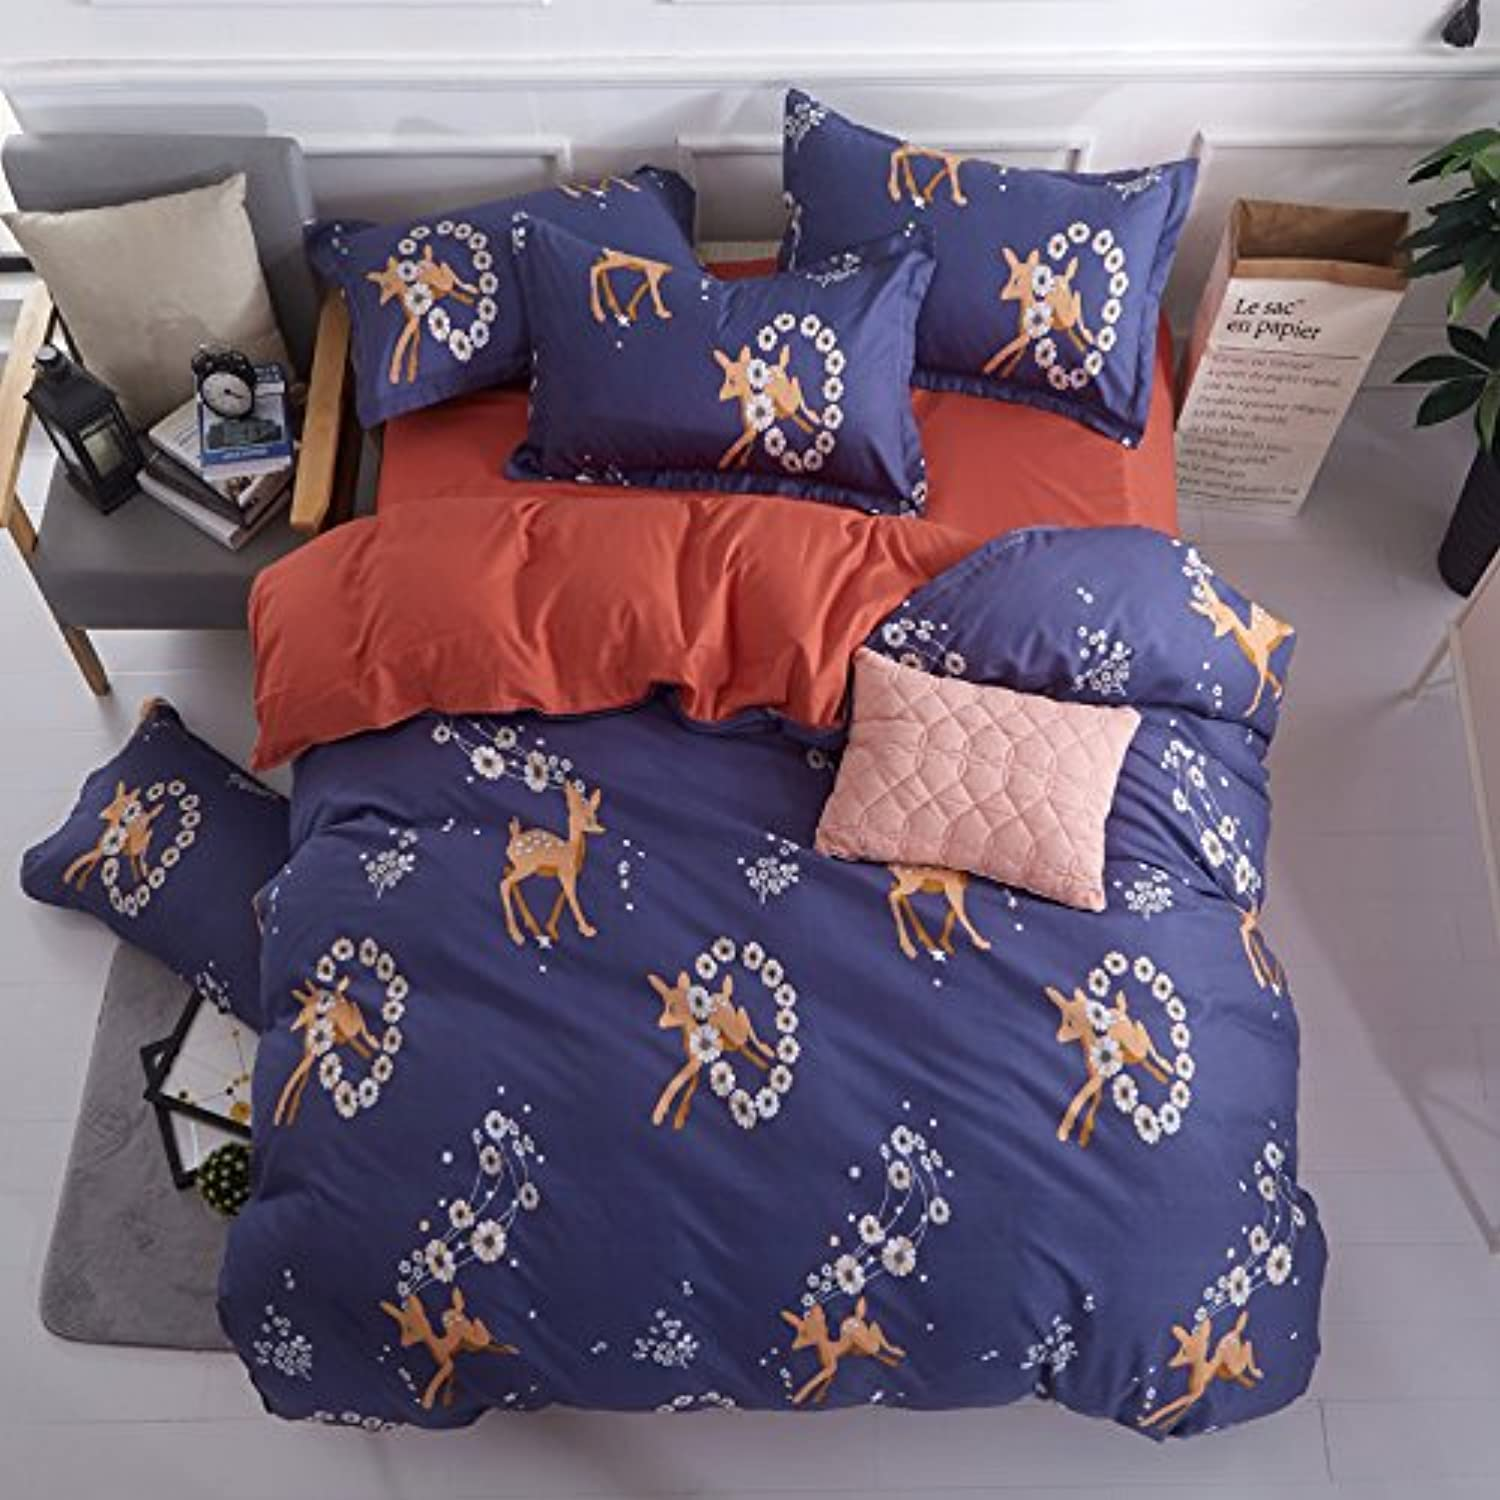 4pcs Beddingset Duvet Cover Set Include One Duvet Cover Without Comforter One Flat Sheet Two Pillowcases BL Twin Full Queen Deer Design (Queen, Deer, Purple)